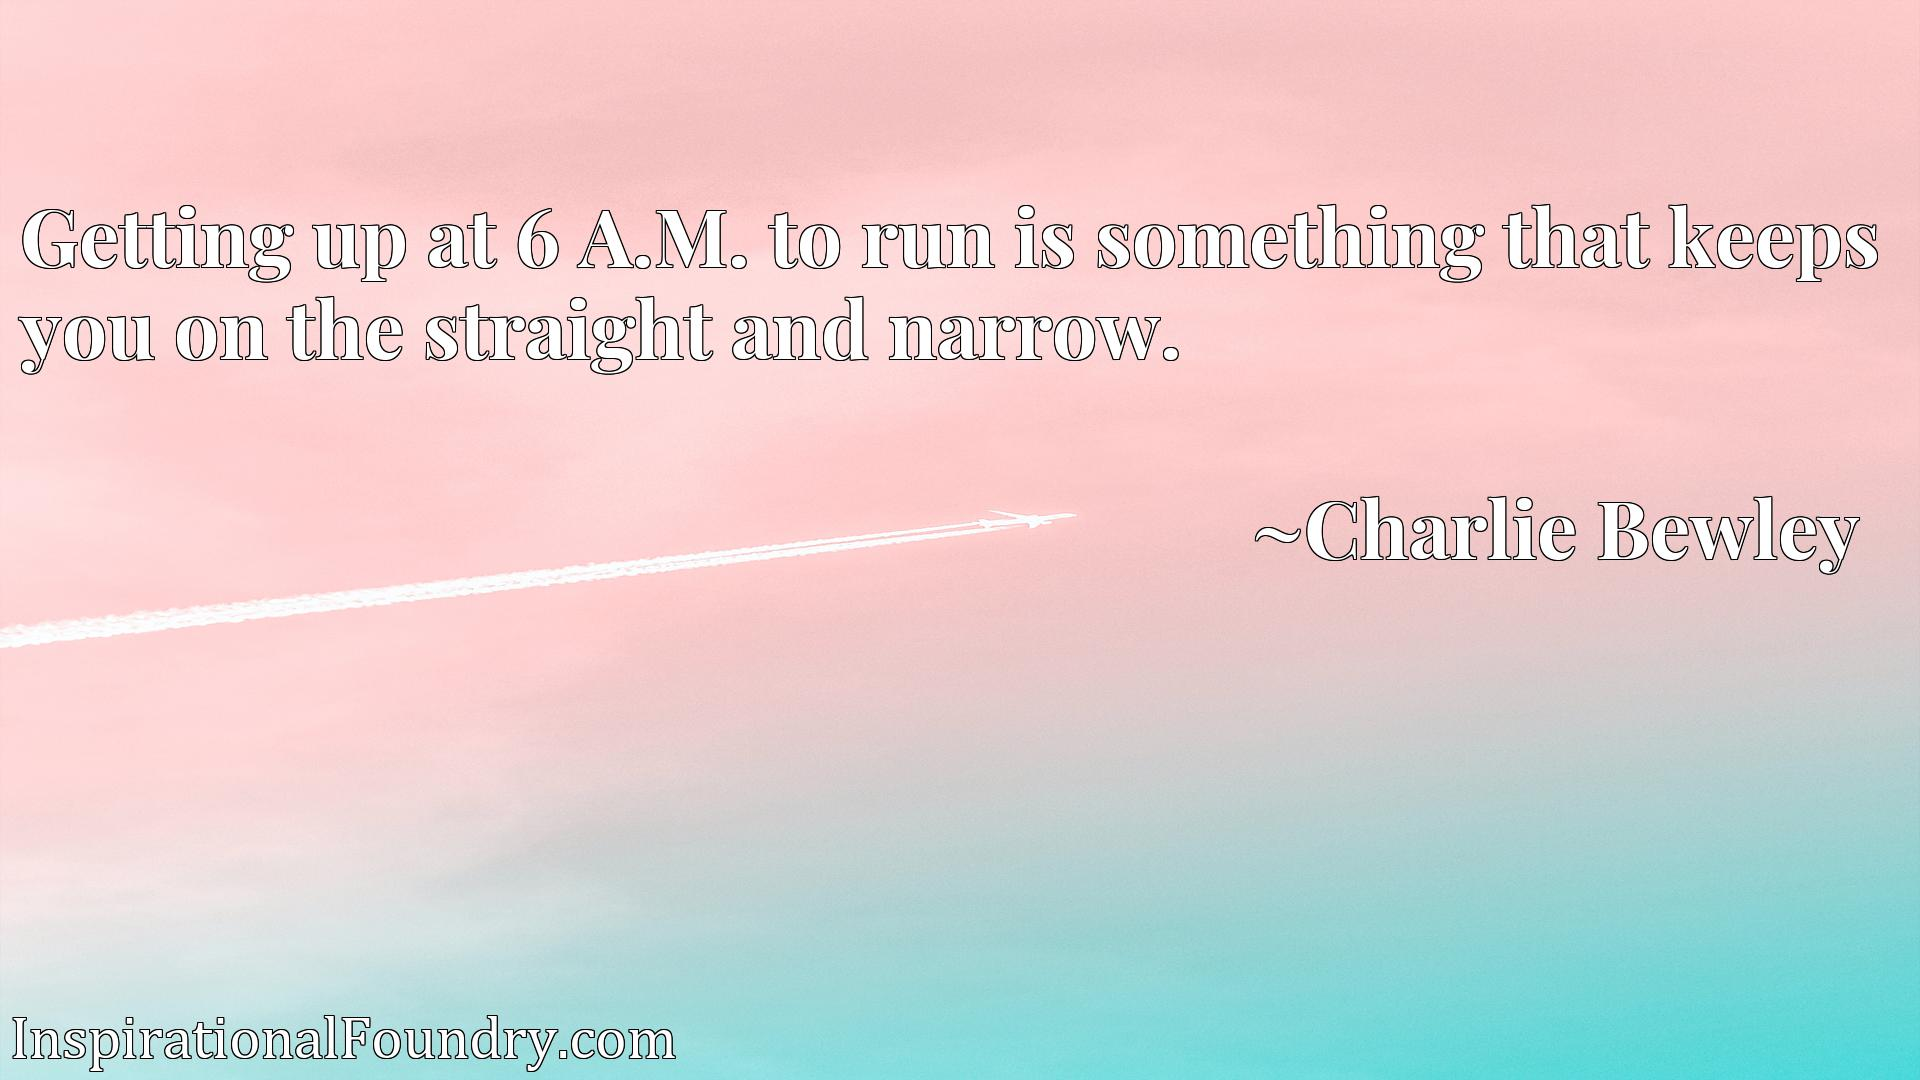 Quote Picture :Getting up at 6 A.M. to run is something that keeps you on the straight and narrow.